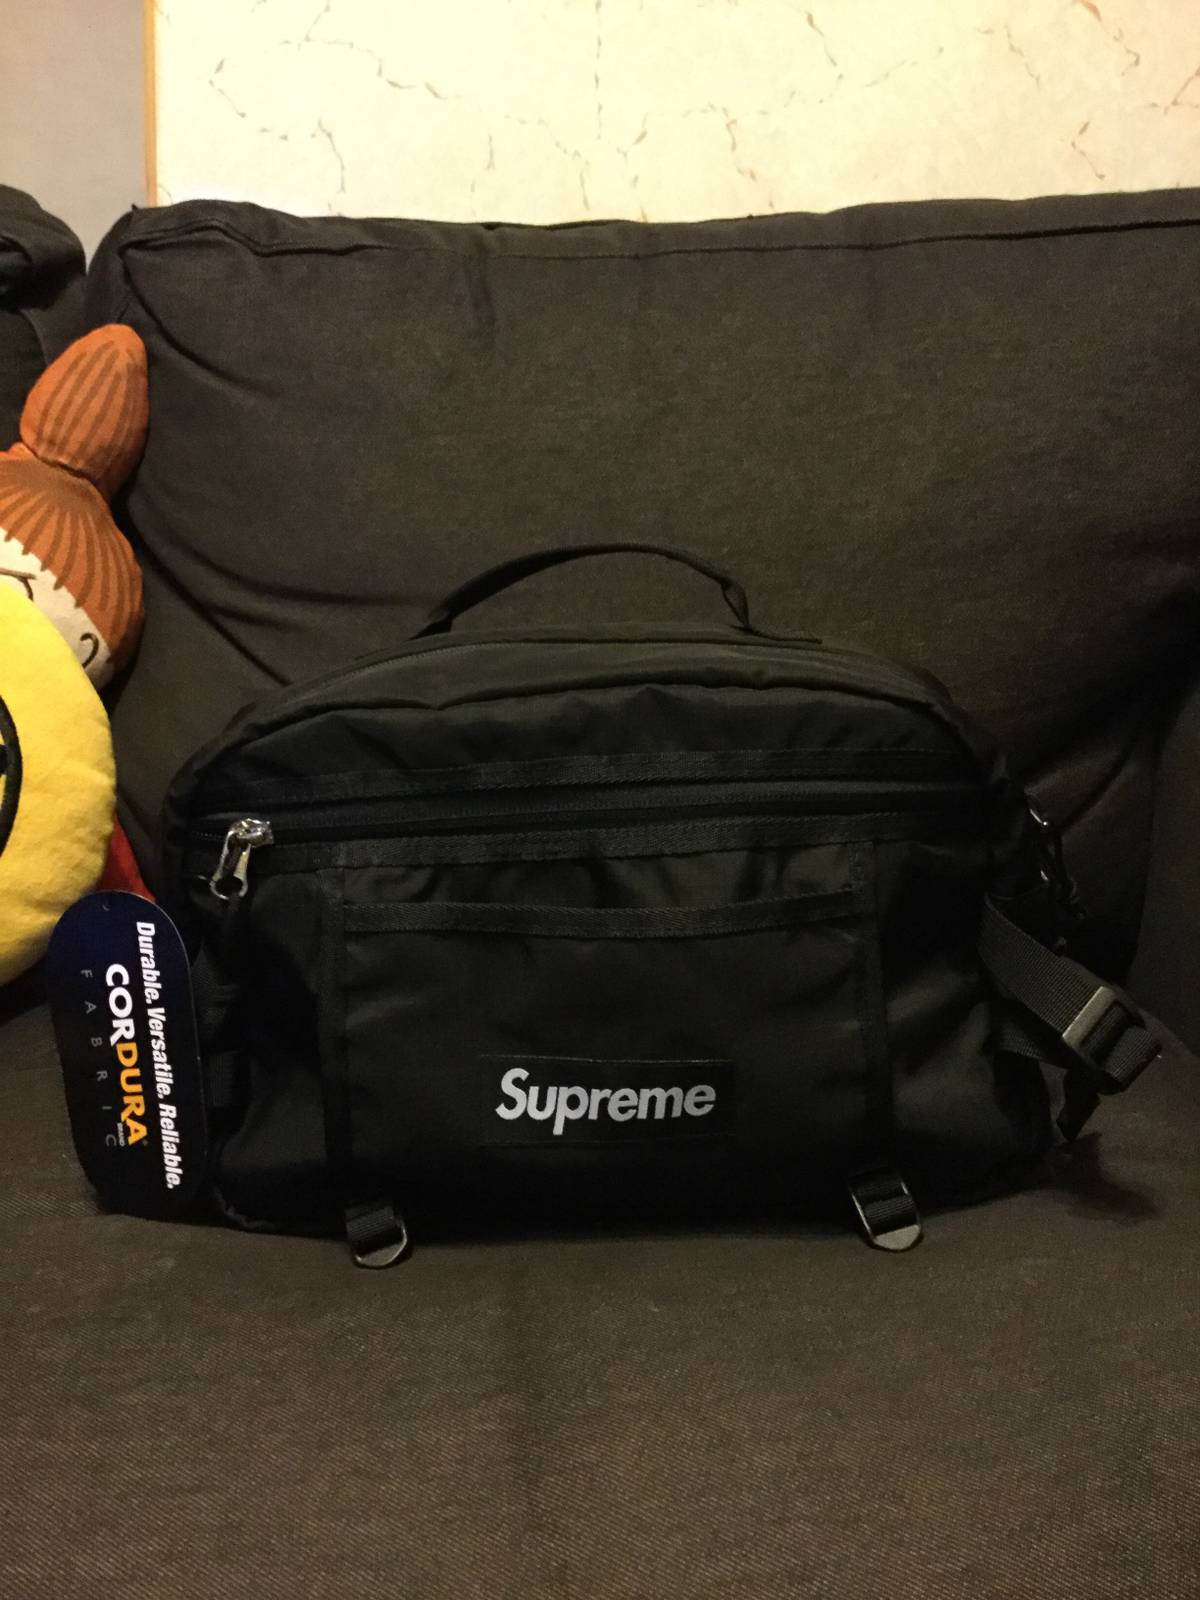 4bdcf937b113 Supreme 2016 SS SUPREME tonal Shoulder bag Black Supreme shoulder bag hip  bag waist bag BOX Size one size - Bags   Luggage for Sale - Grailed